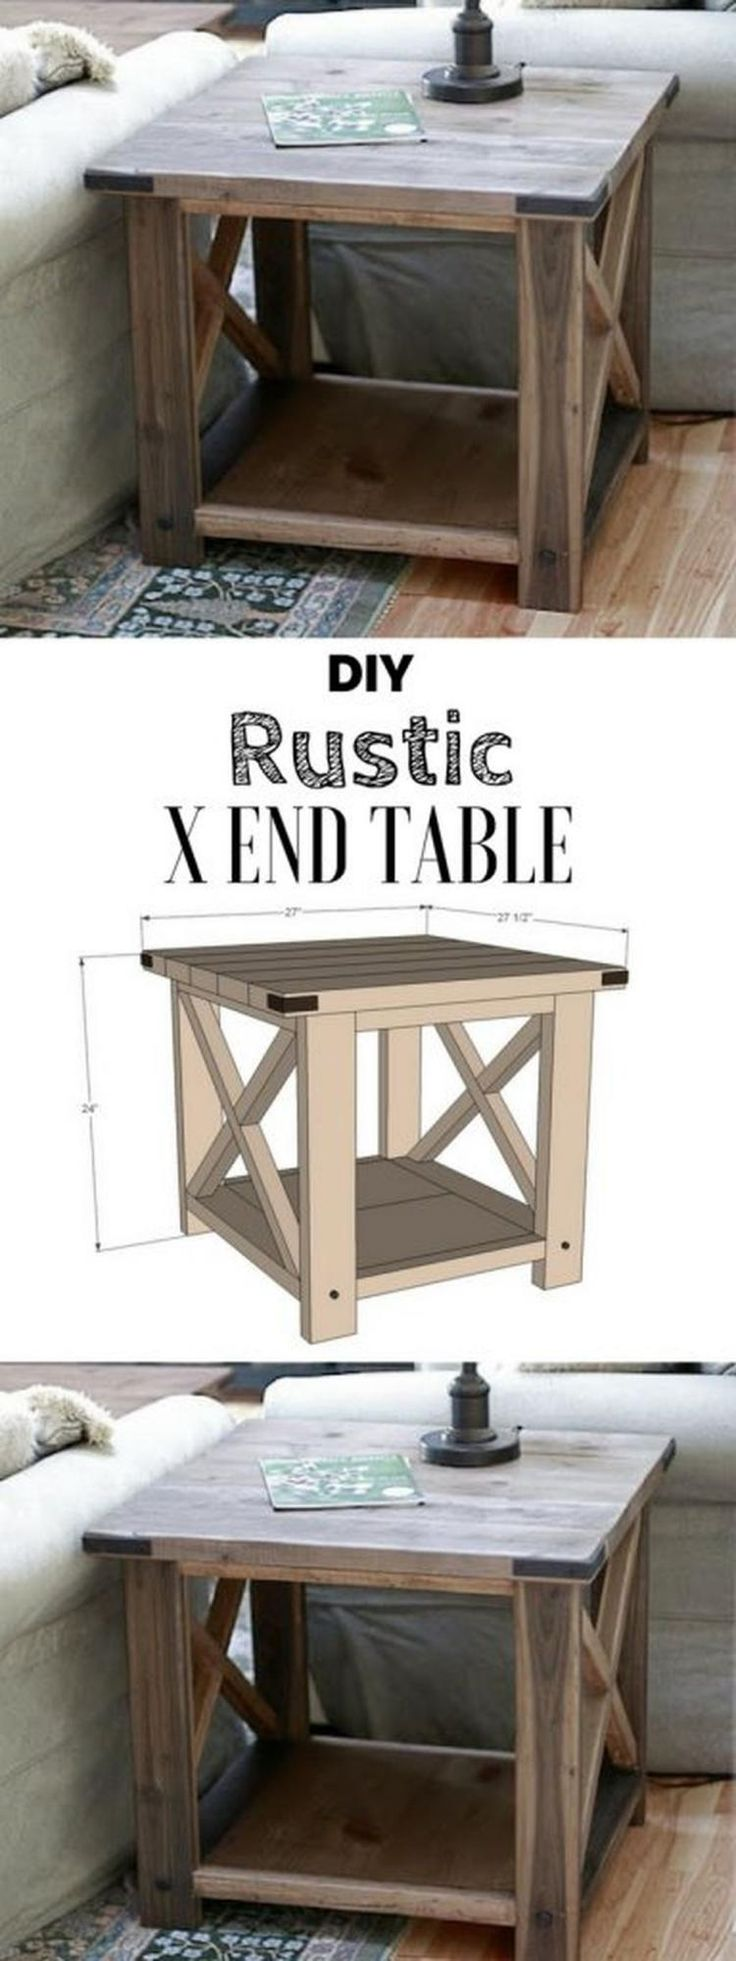 80+ Smart Diy Rustic Home Decors You Should Try it!